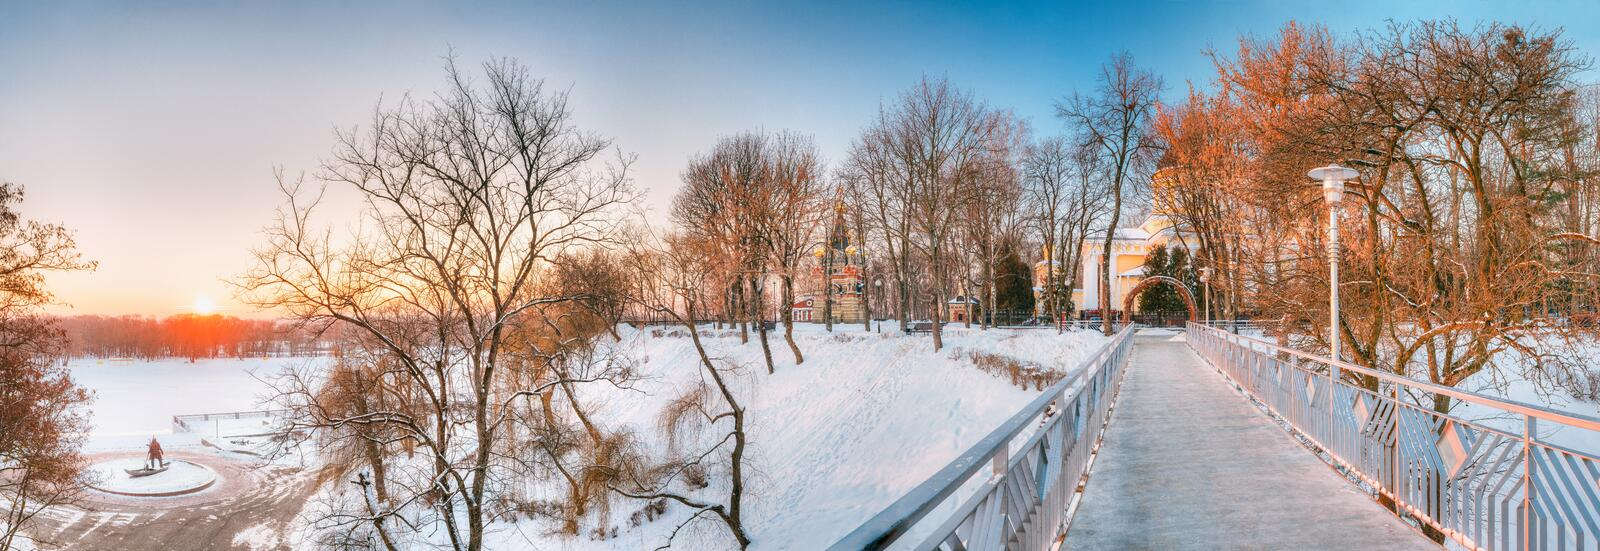 Gomel, Belarus. Sun Rising Over City Park At Winter Morning In Gomel. Belarus. Panorama, Scenic View Of River Embankment And Peter And Paul Cathedral At royalty free stock photography